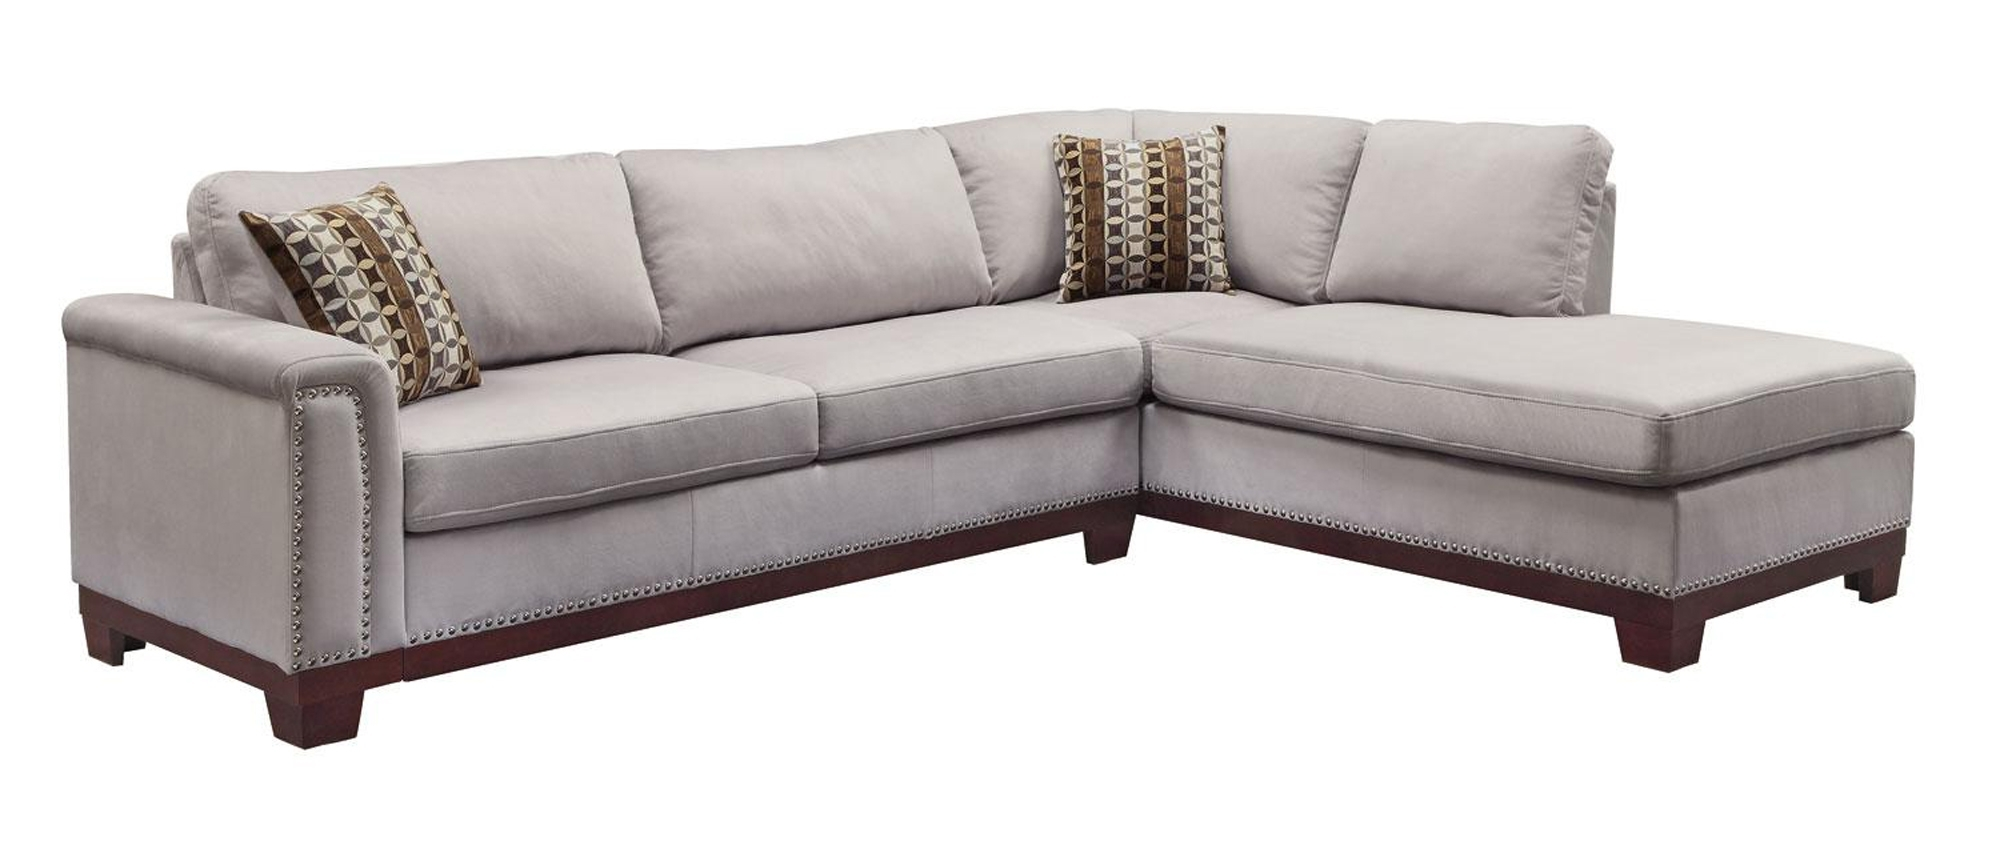 Recent Sectional Sofas With Nailheads Inside $ (View 9 of 15)